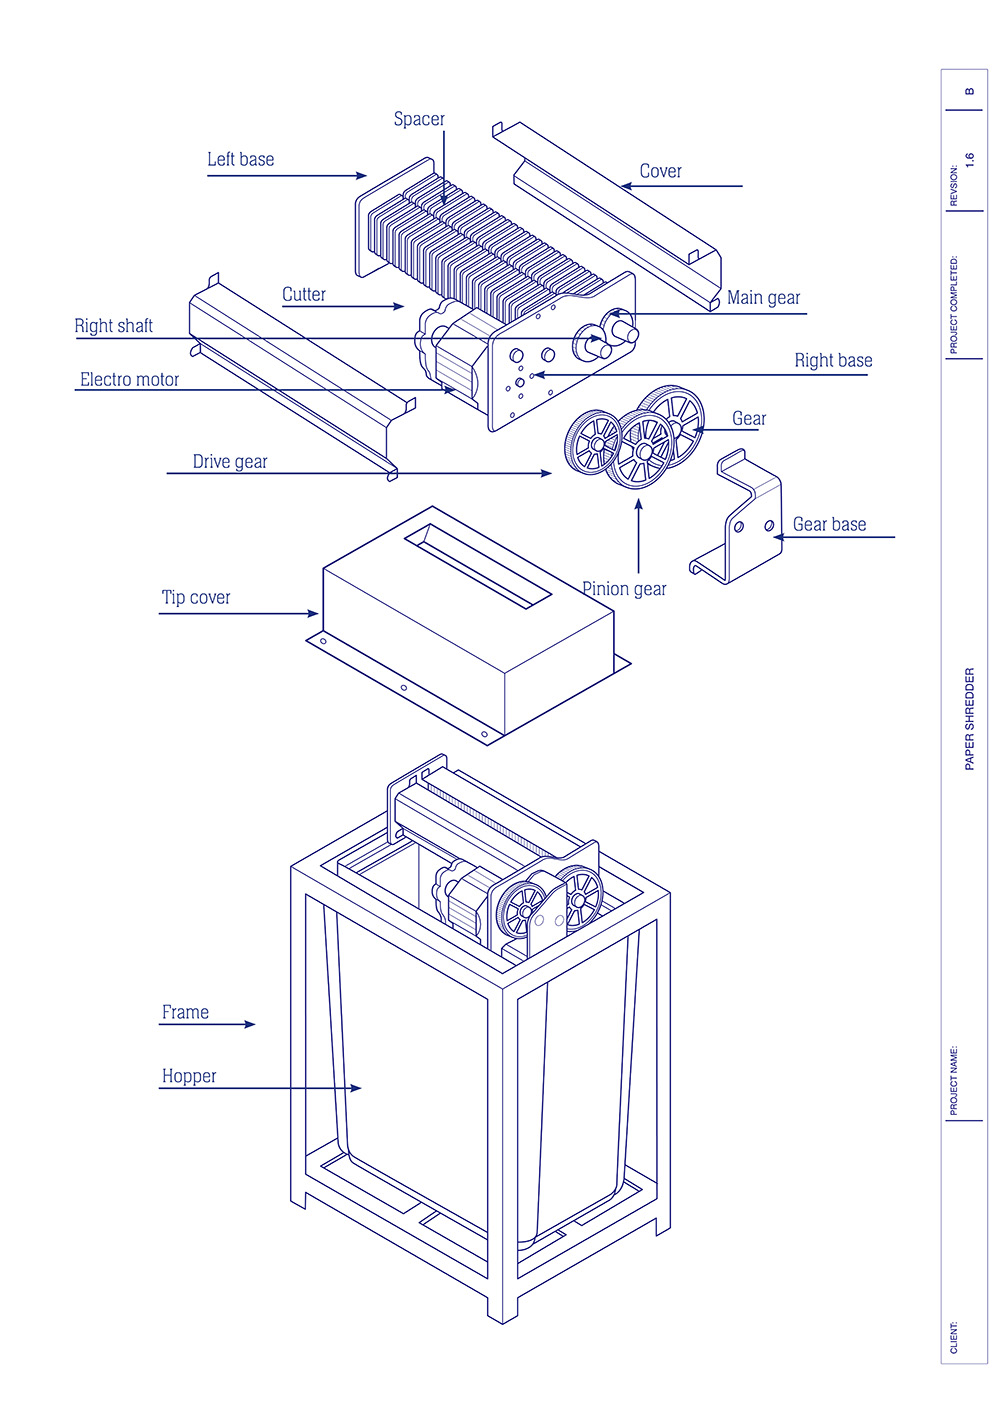 Superwinch 92 520000 Wiring Diagram Library Paper Shredder Classic Project Office E T Magazine Rh Eandt Theiet Org Motor